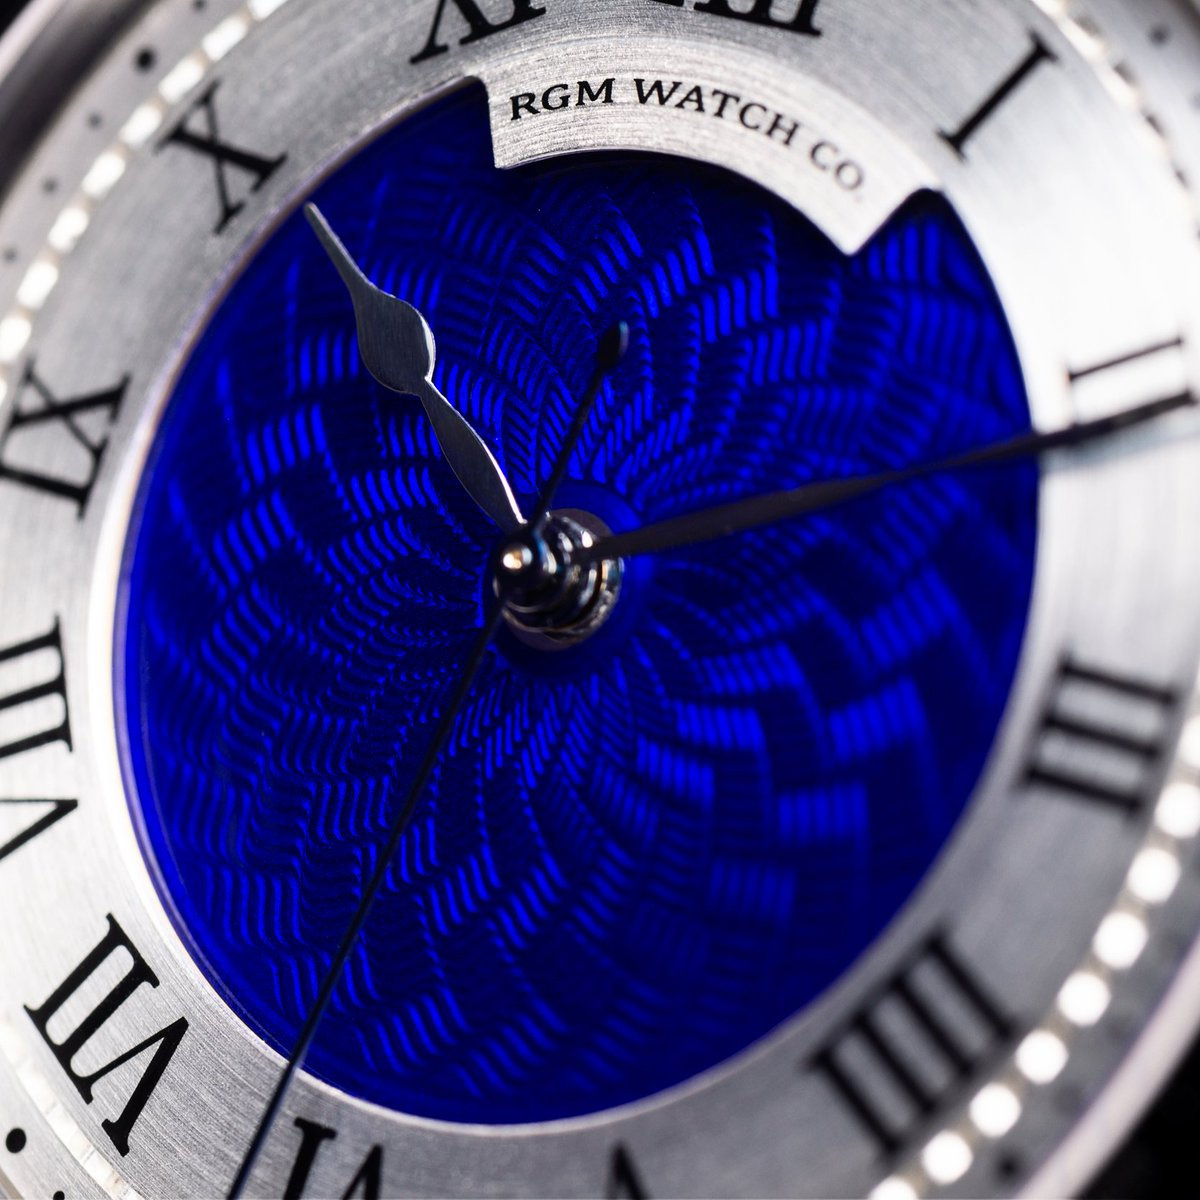 A closeup of the Flinqué enamelling over our hand cut Engine-Turned dial. #rgm #rgmwatches #rgmwatch #watch #watches #wristwatch #wristwatches #watchmaking #watchmaker #guilloche #engineturning #flinque #enamel #enameldial #independentwatchmaking #independentwatchmaker